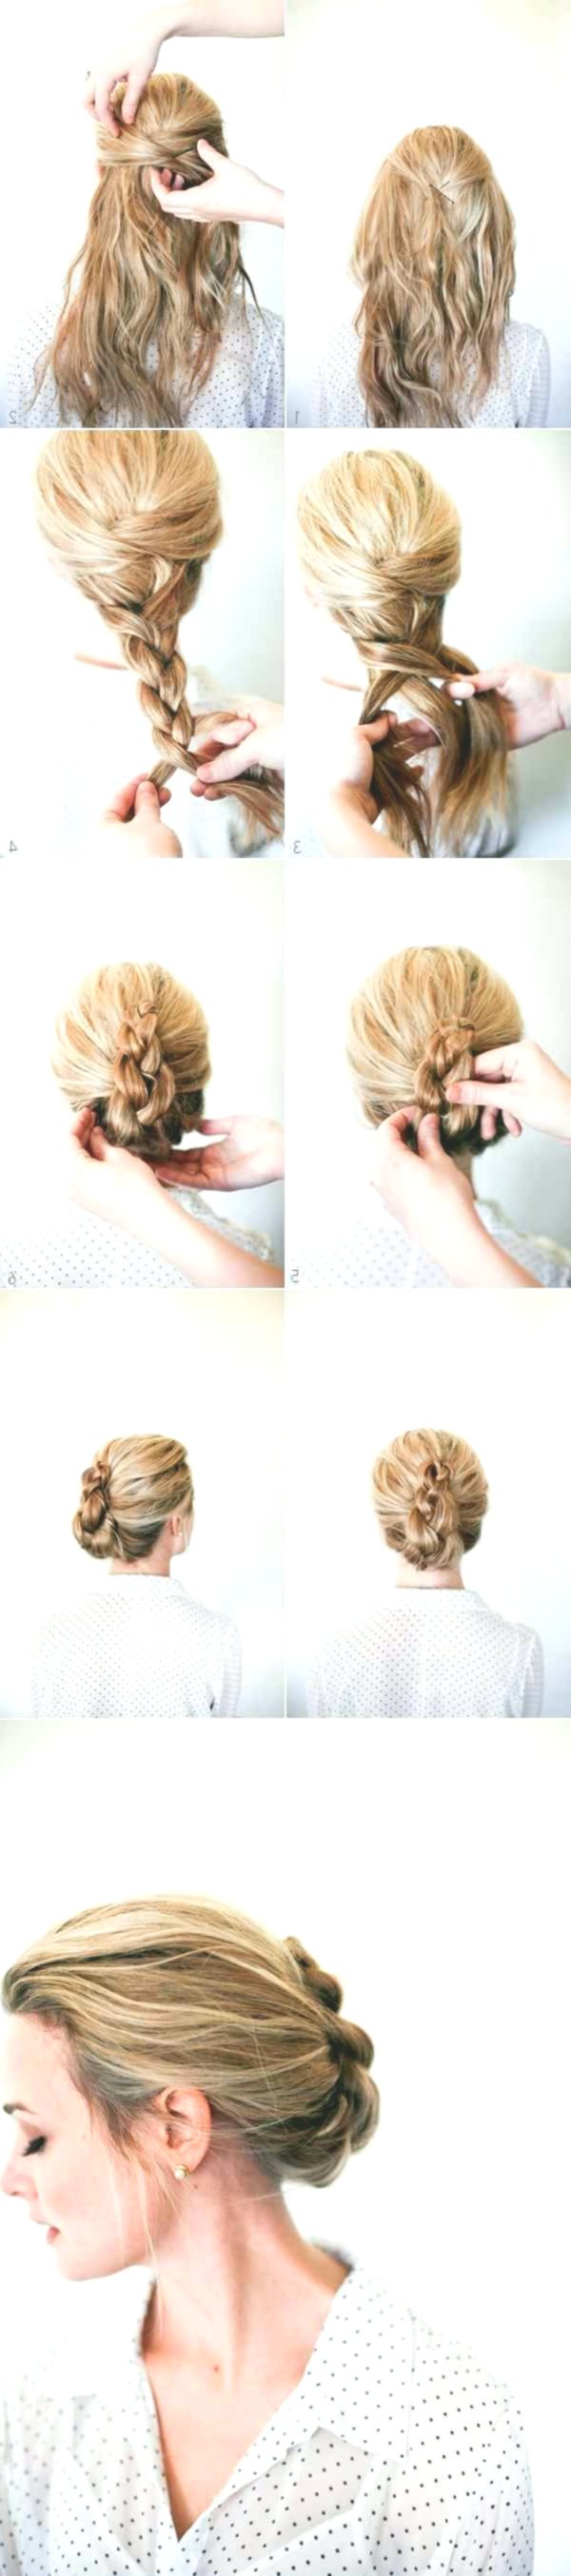 fresh updos with instructions picture-stylish updos with instructions portrait